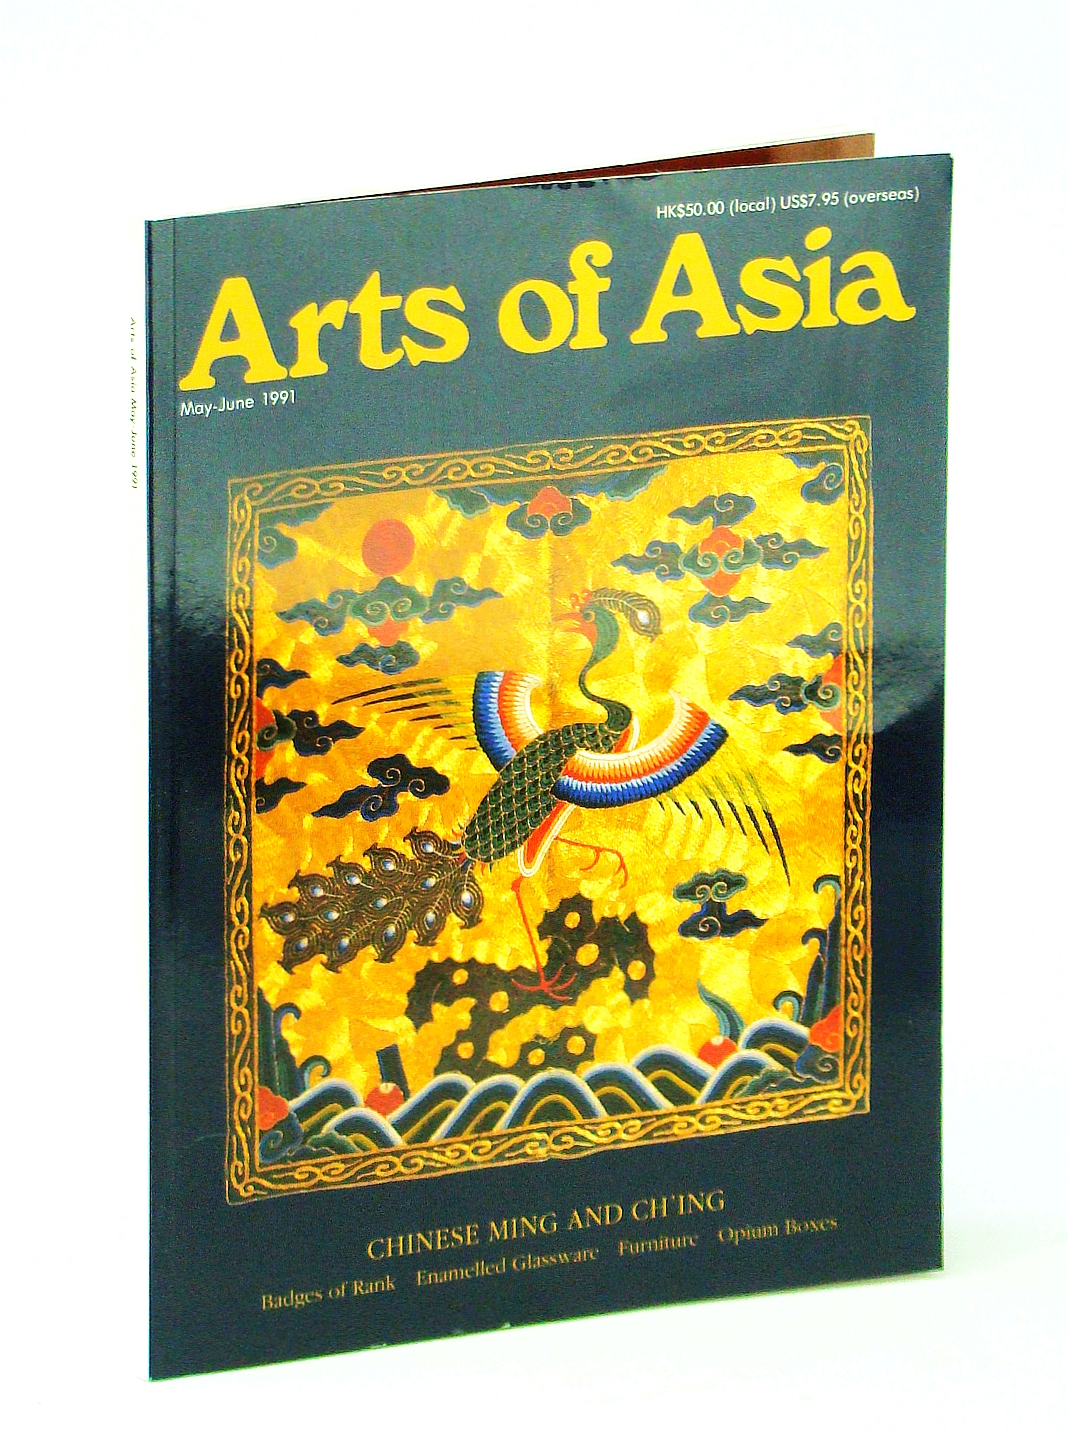 Image for Arts of asia /may-june 1991 / chinese ming and ch'ing